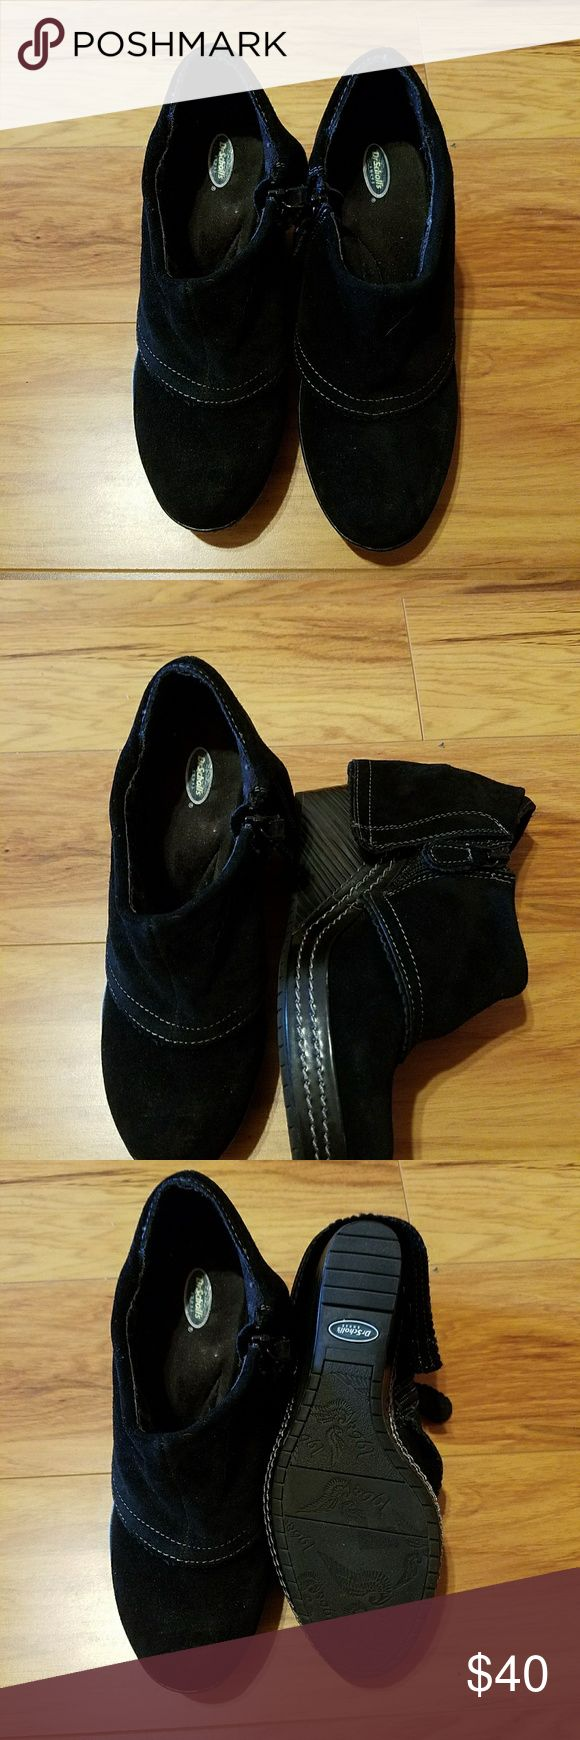 Women dr. Scholls black wedge shoes Worn very little.  Like new black with wedge hill Dr. Scholl's Shoes Ankle Boots & Booties